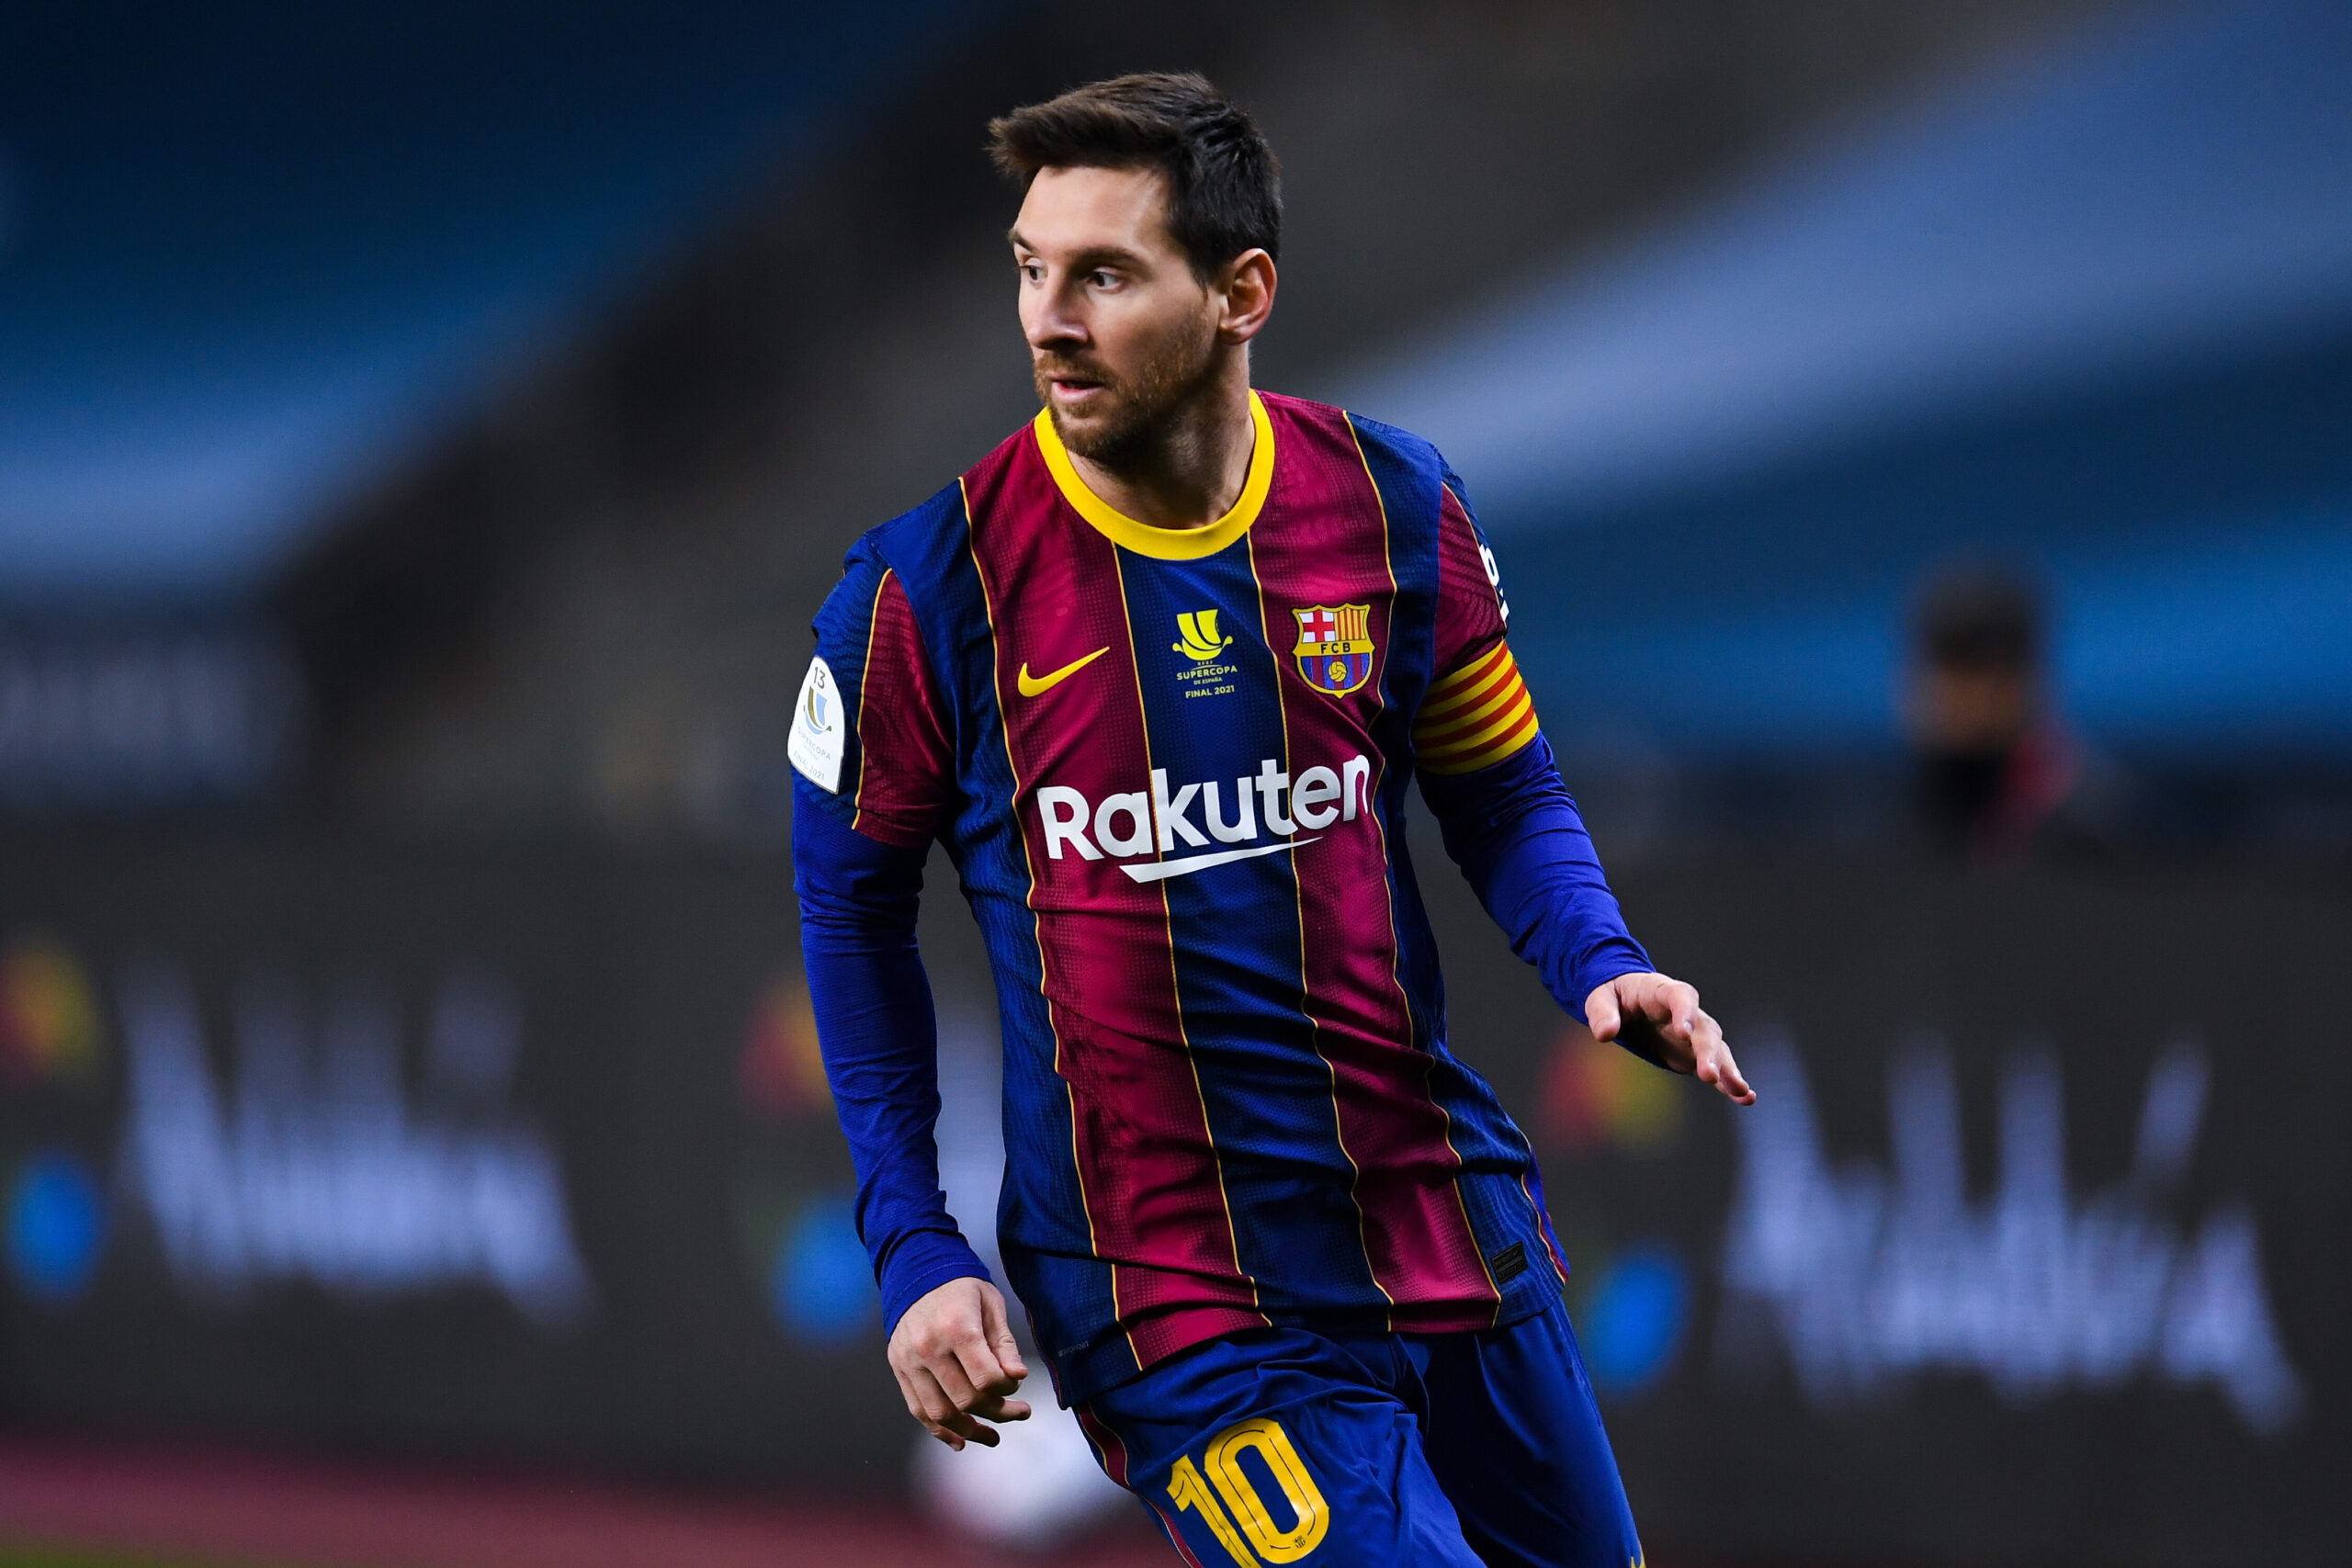 <i>David Ramos/Getty Images Europe/Getty Images</i><br/>Lionel Messi